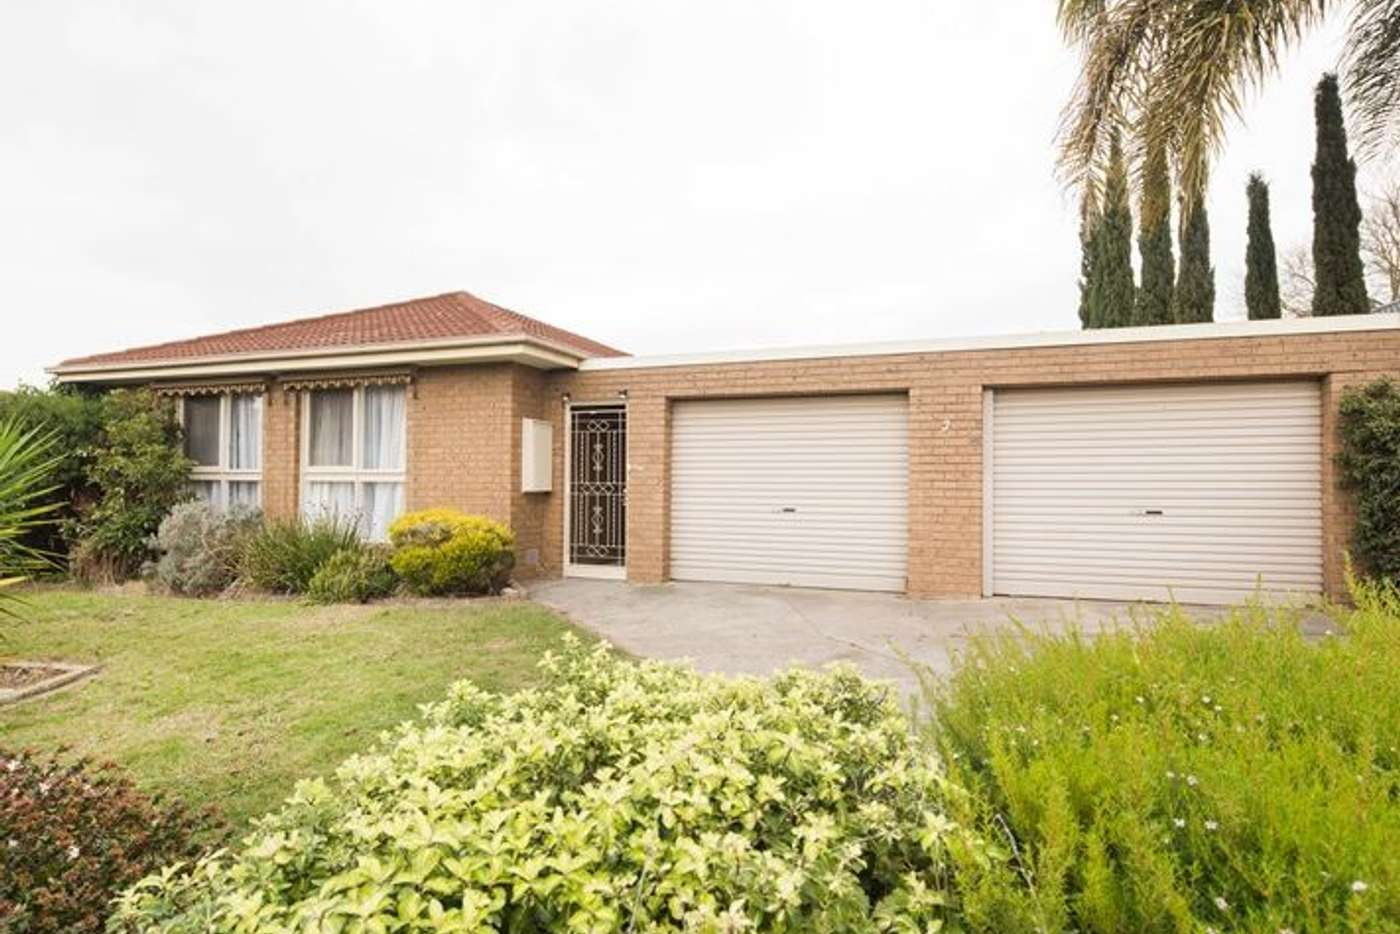 Main view of Homely house listing, 2 Saintsbury Crescent, Dandenong North VIC 3175